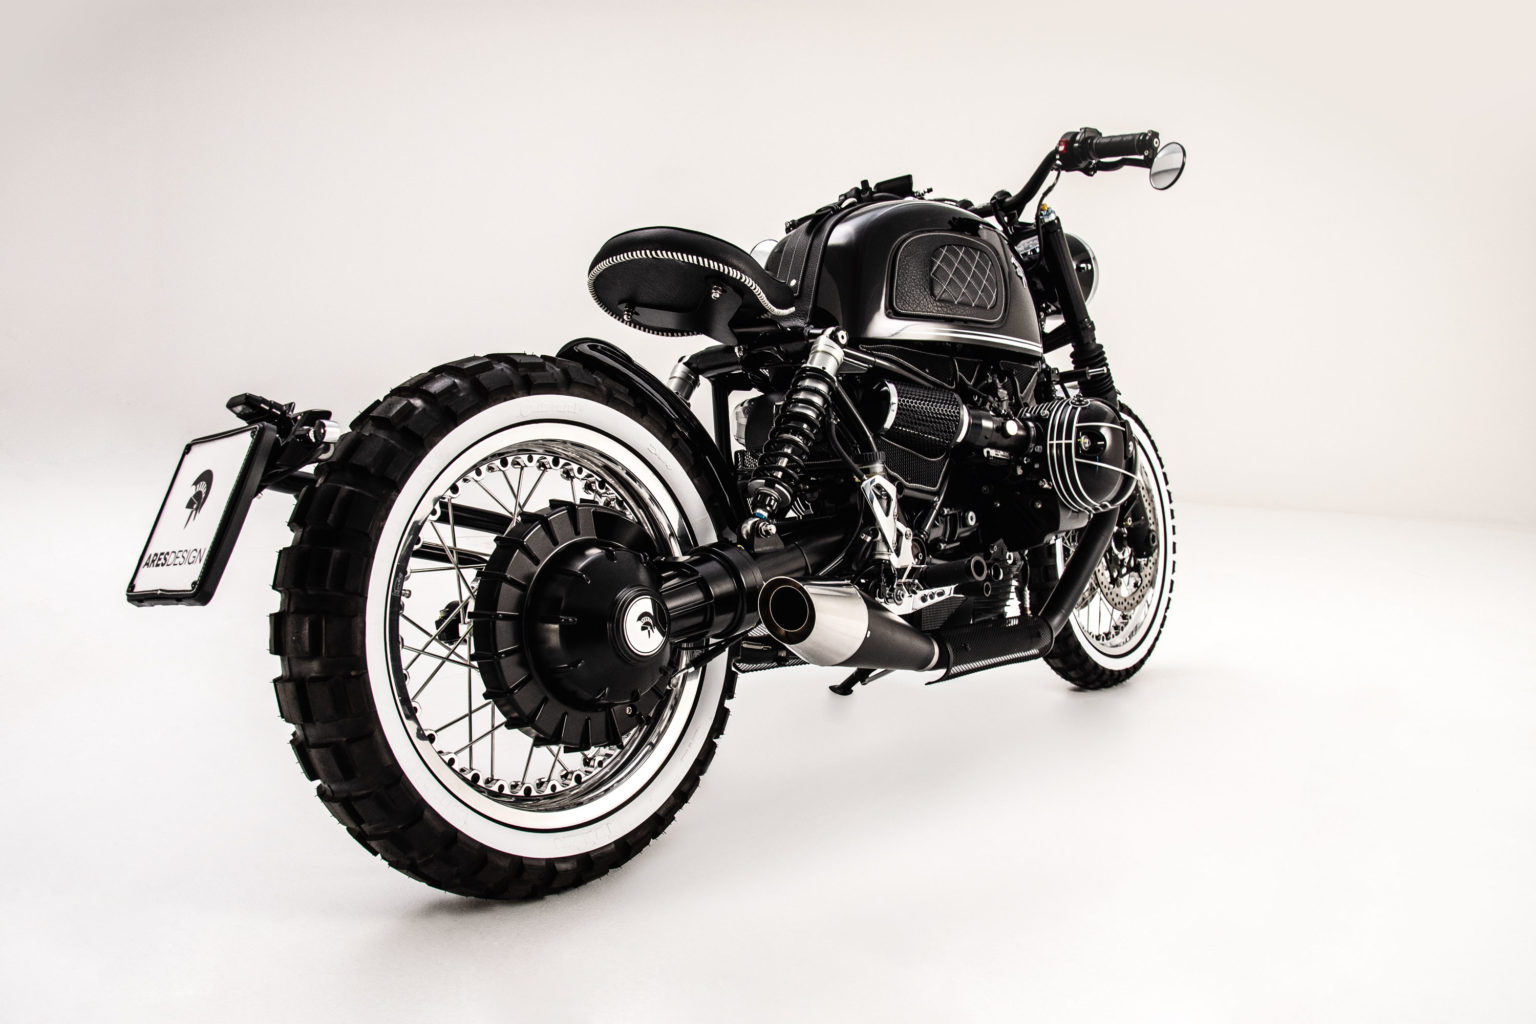 BMW R NineT Retro Scrambler by Ares Design